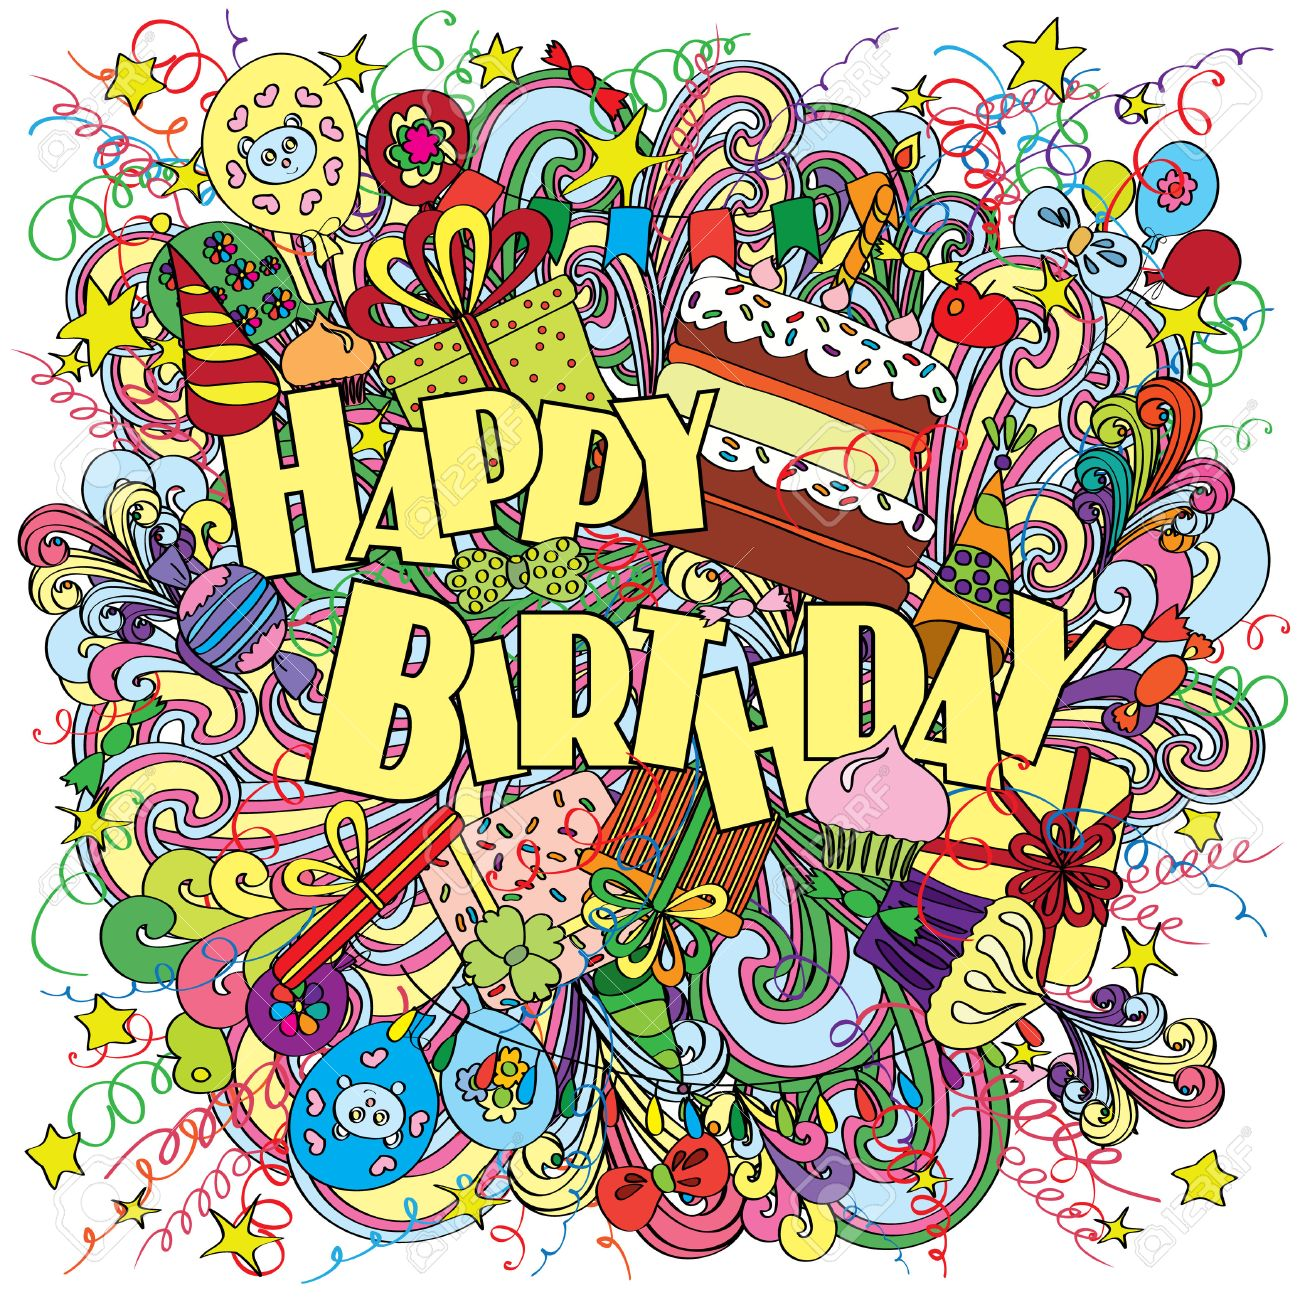 Happy Birthday Greeting Card On Background With Celebration Elements